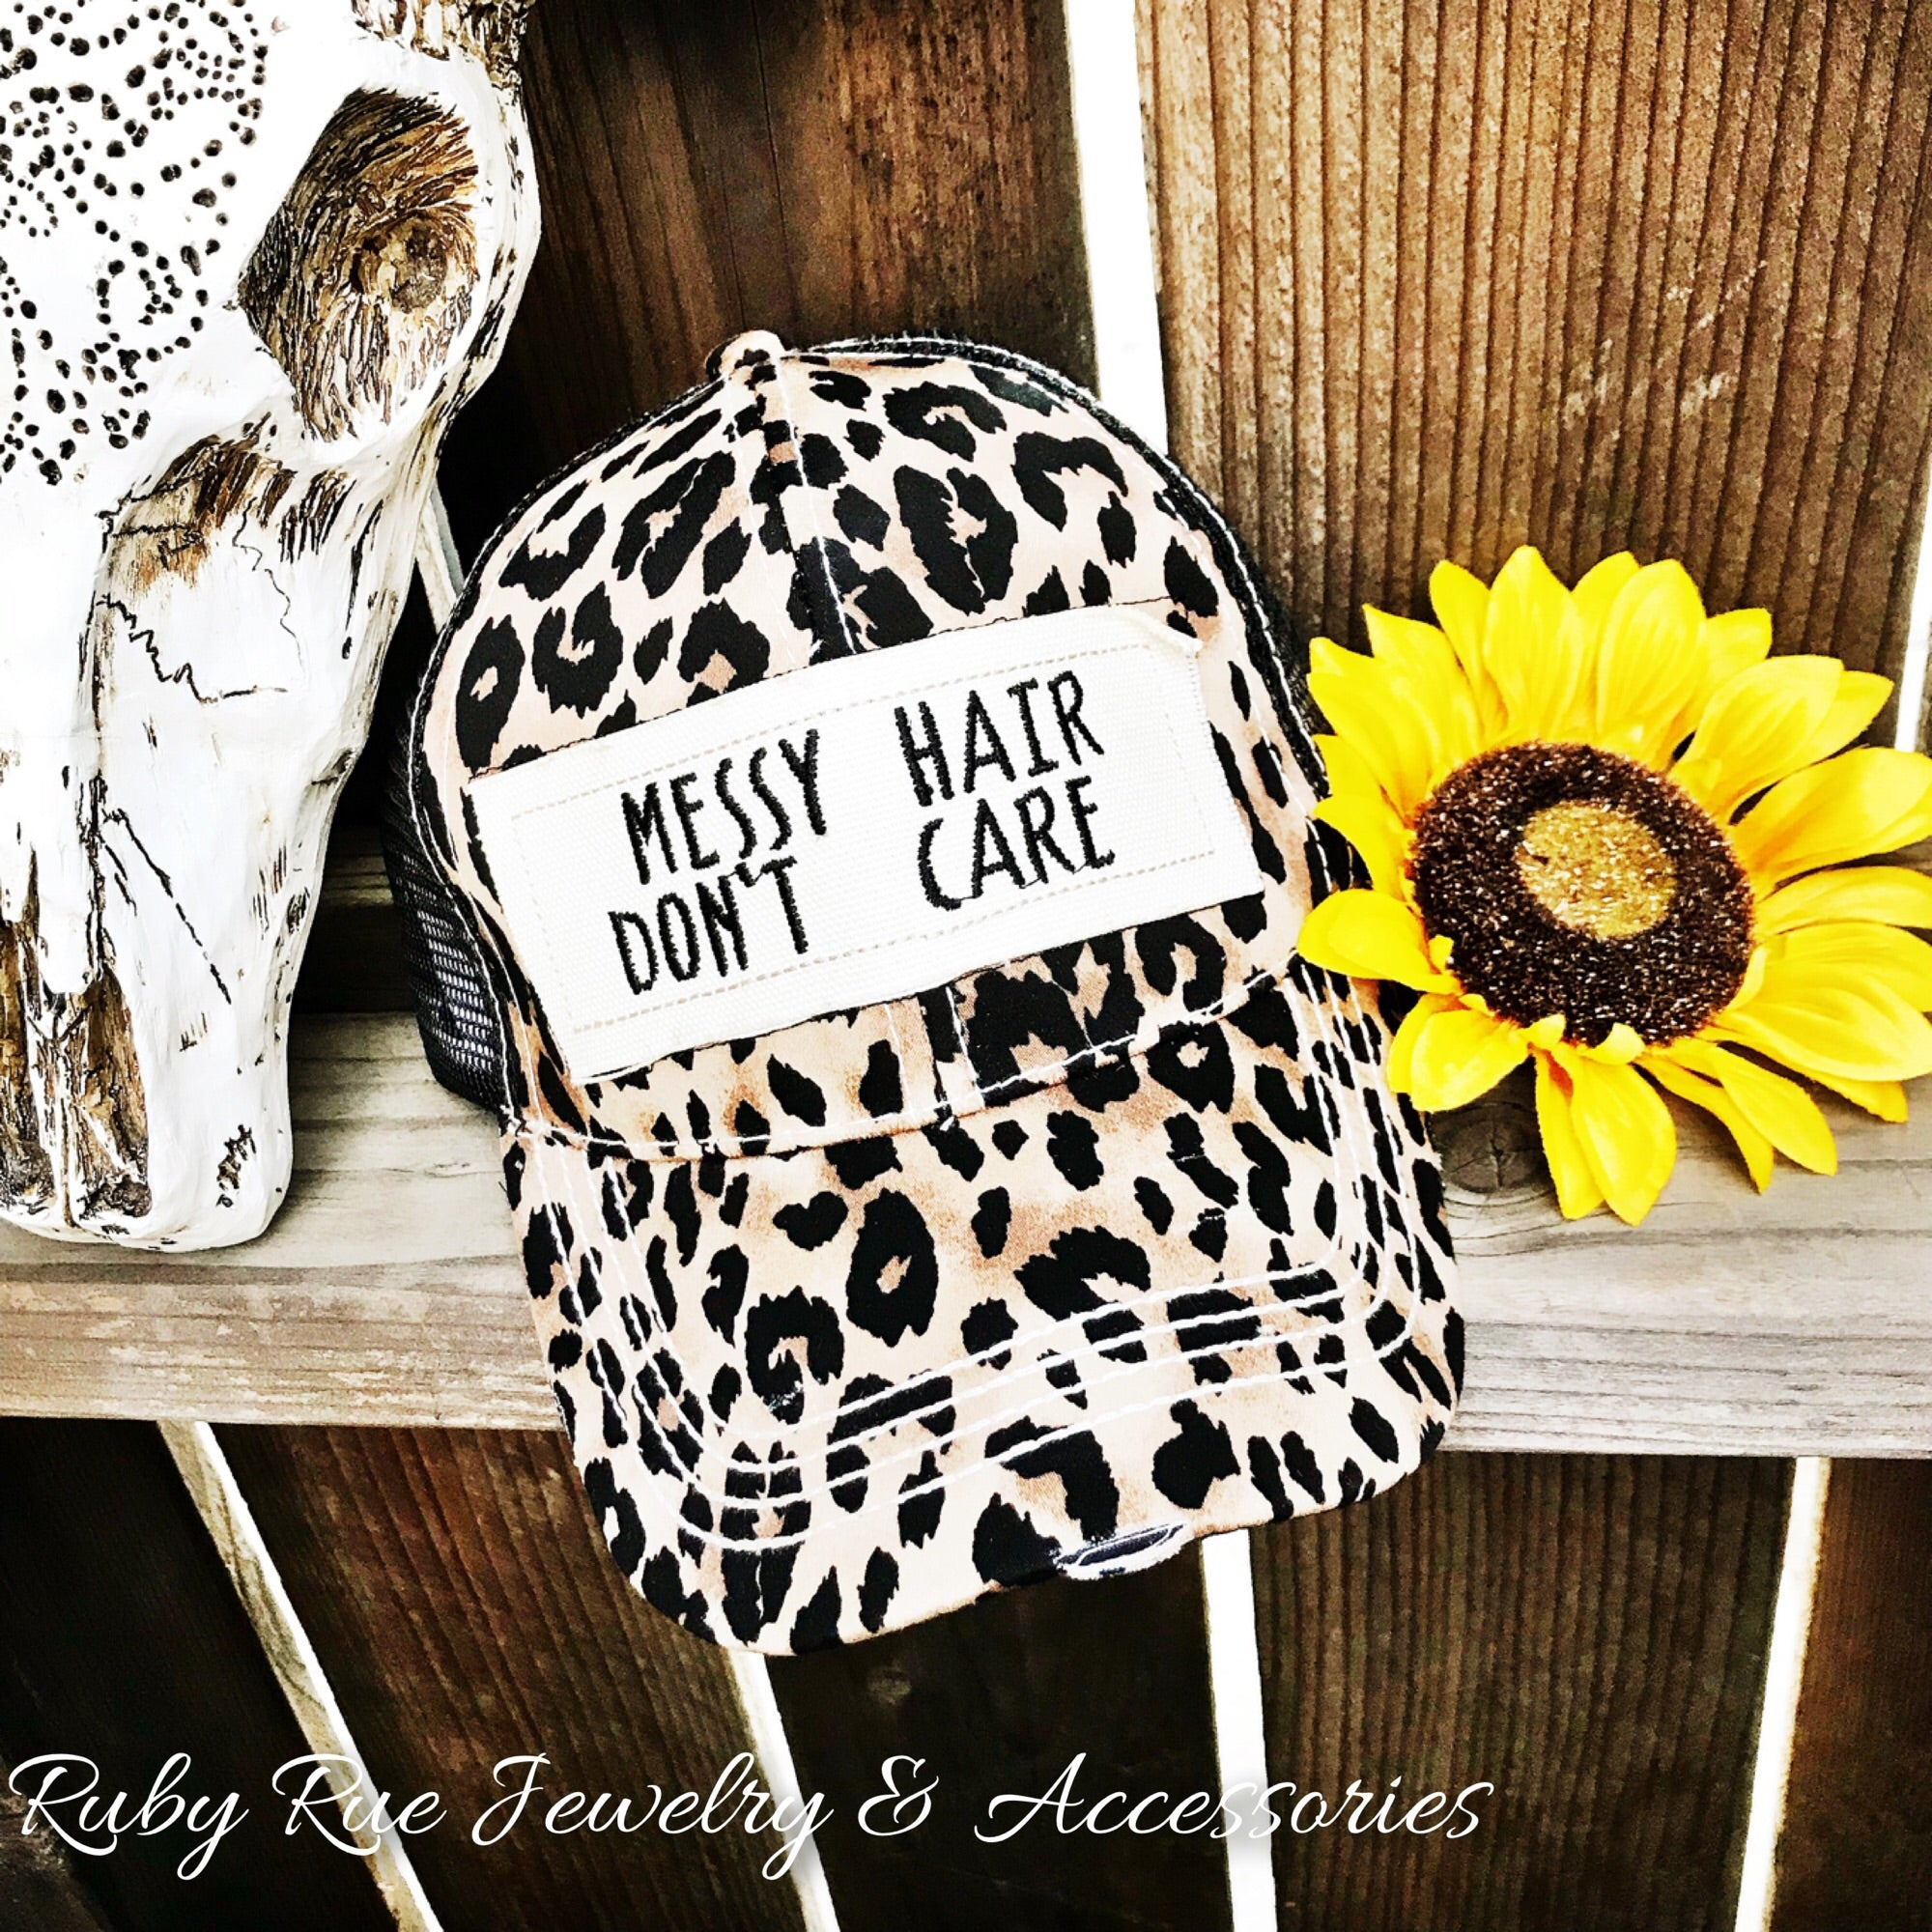 Messy Hair Don't Care Cheetah Hat - Ruby Rue Jewelry & Accessories